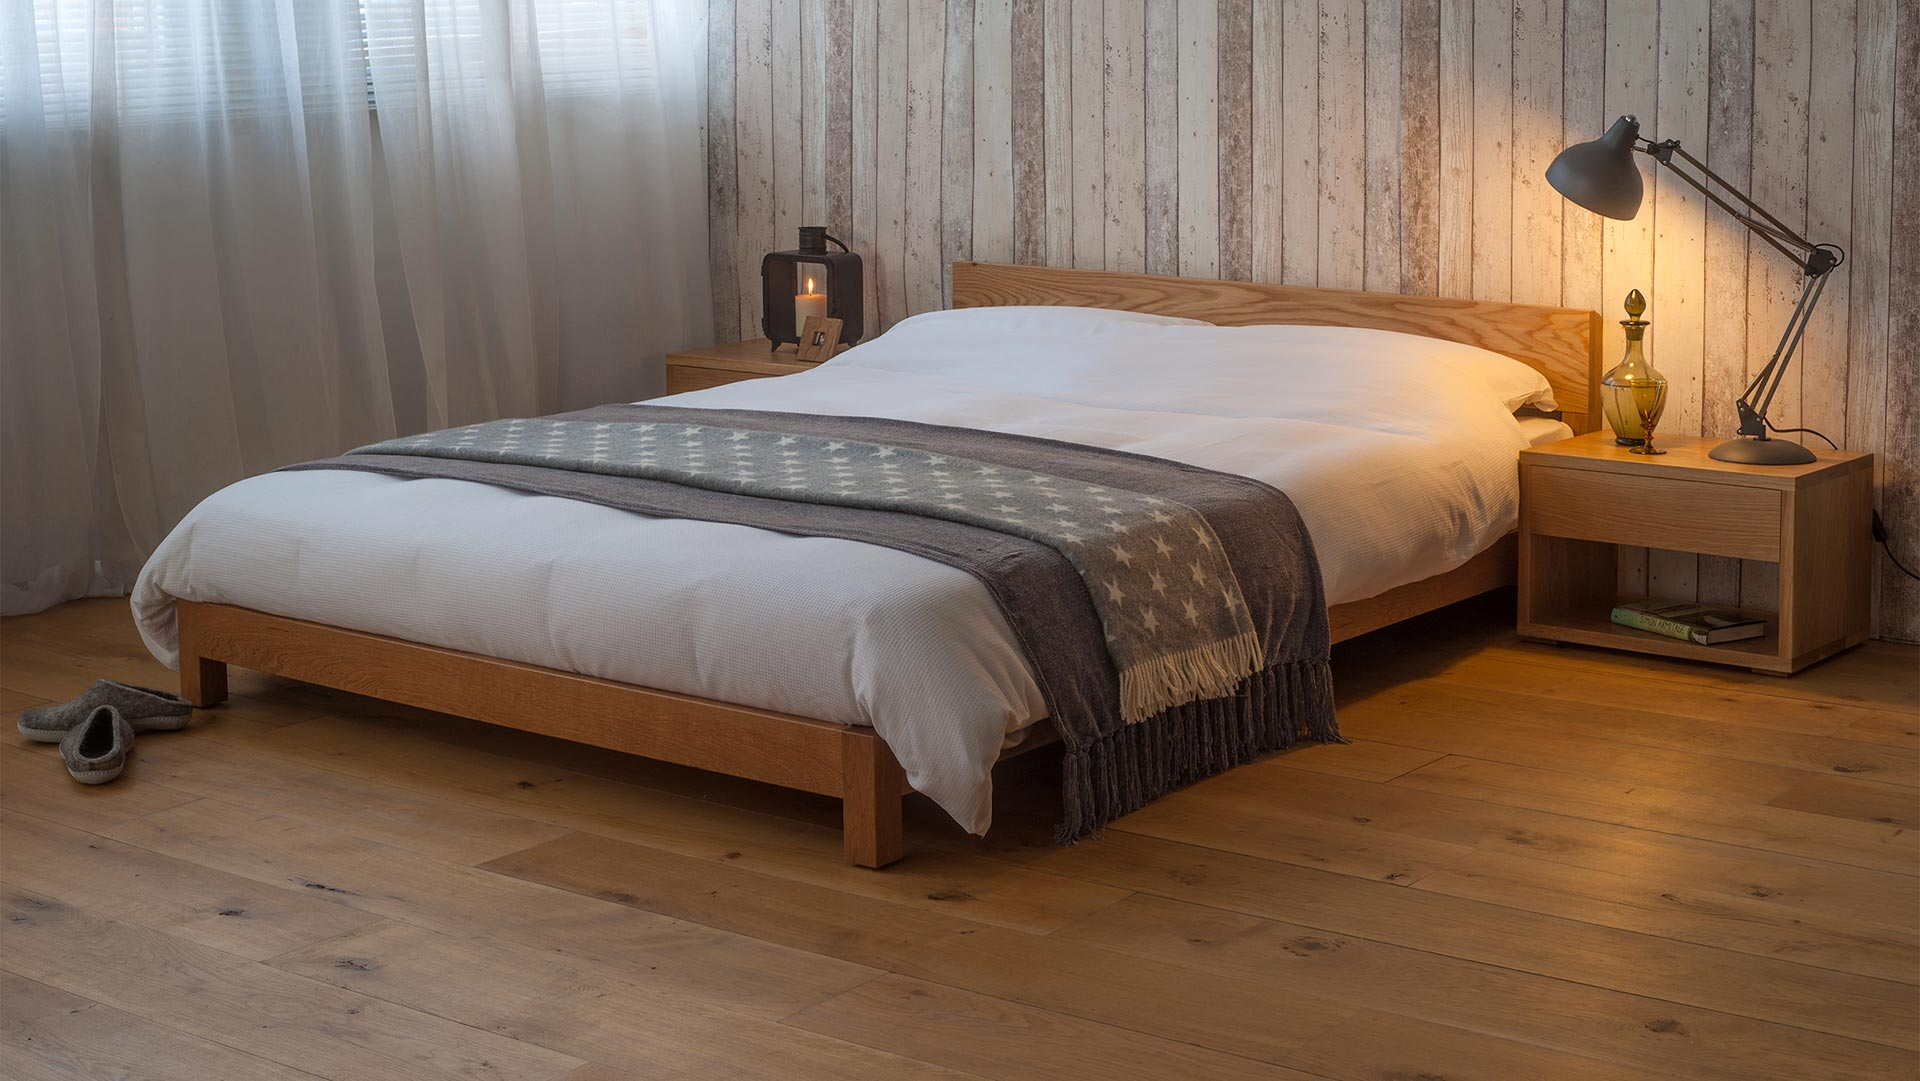 Low wooden Nevada bed with low cube bedside tables, great for attic bedrooms with low ceilings.